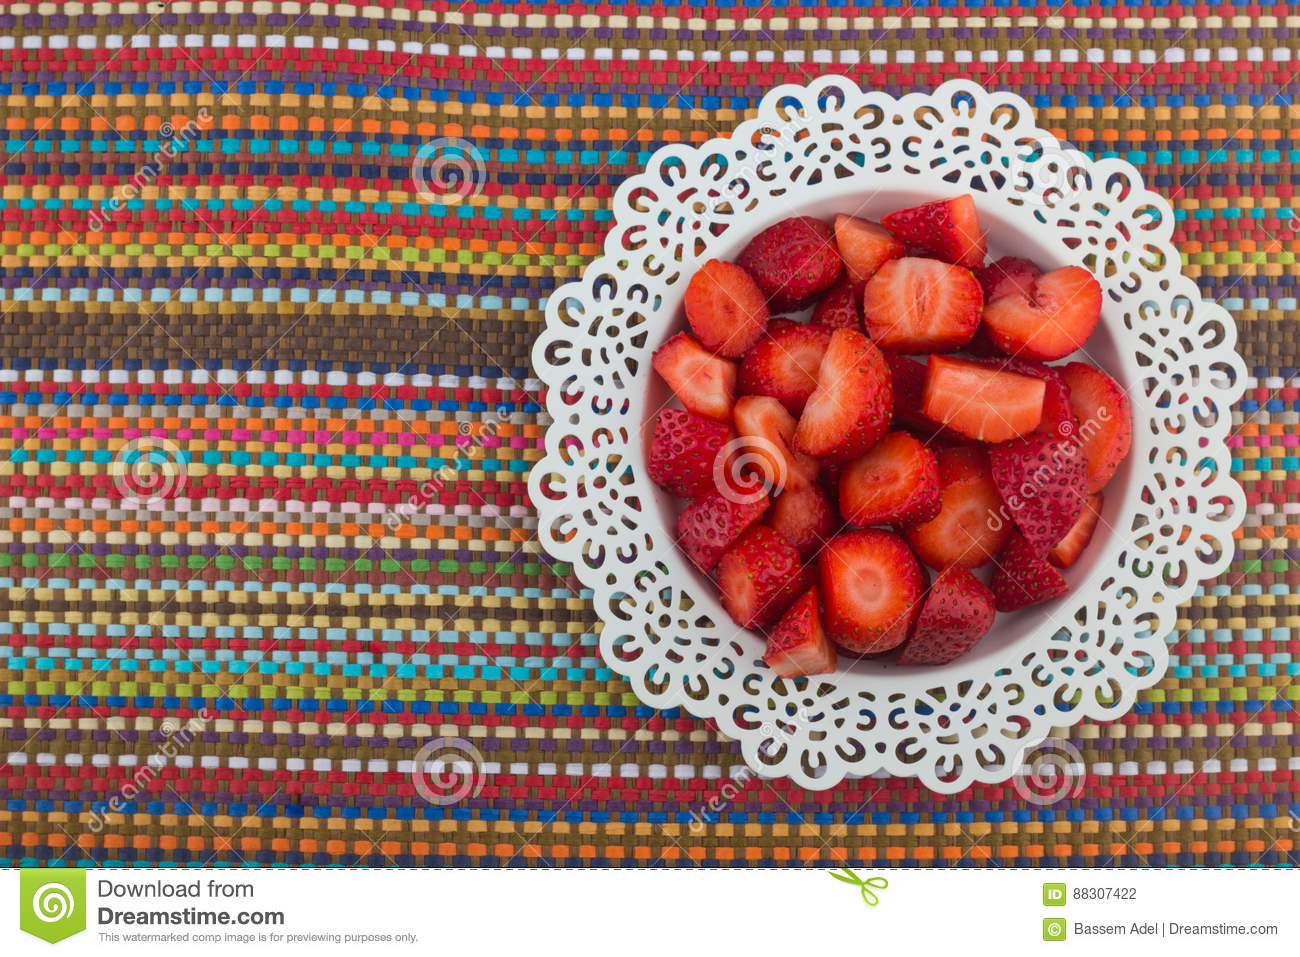 Strawberries on a white plate